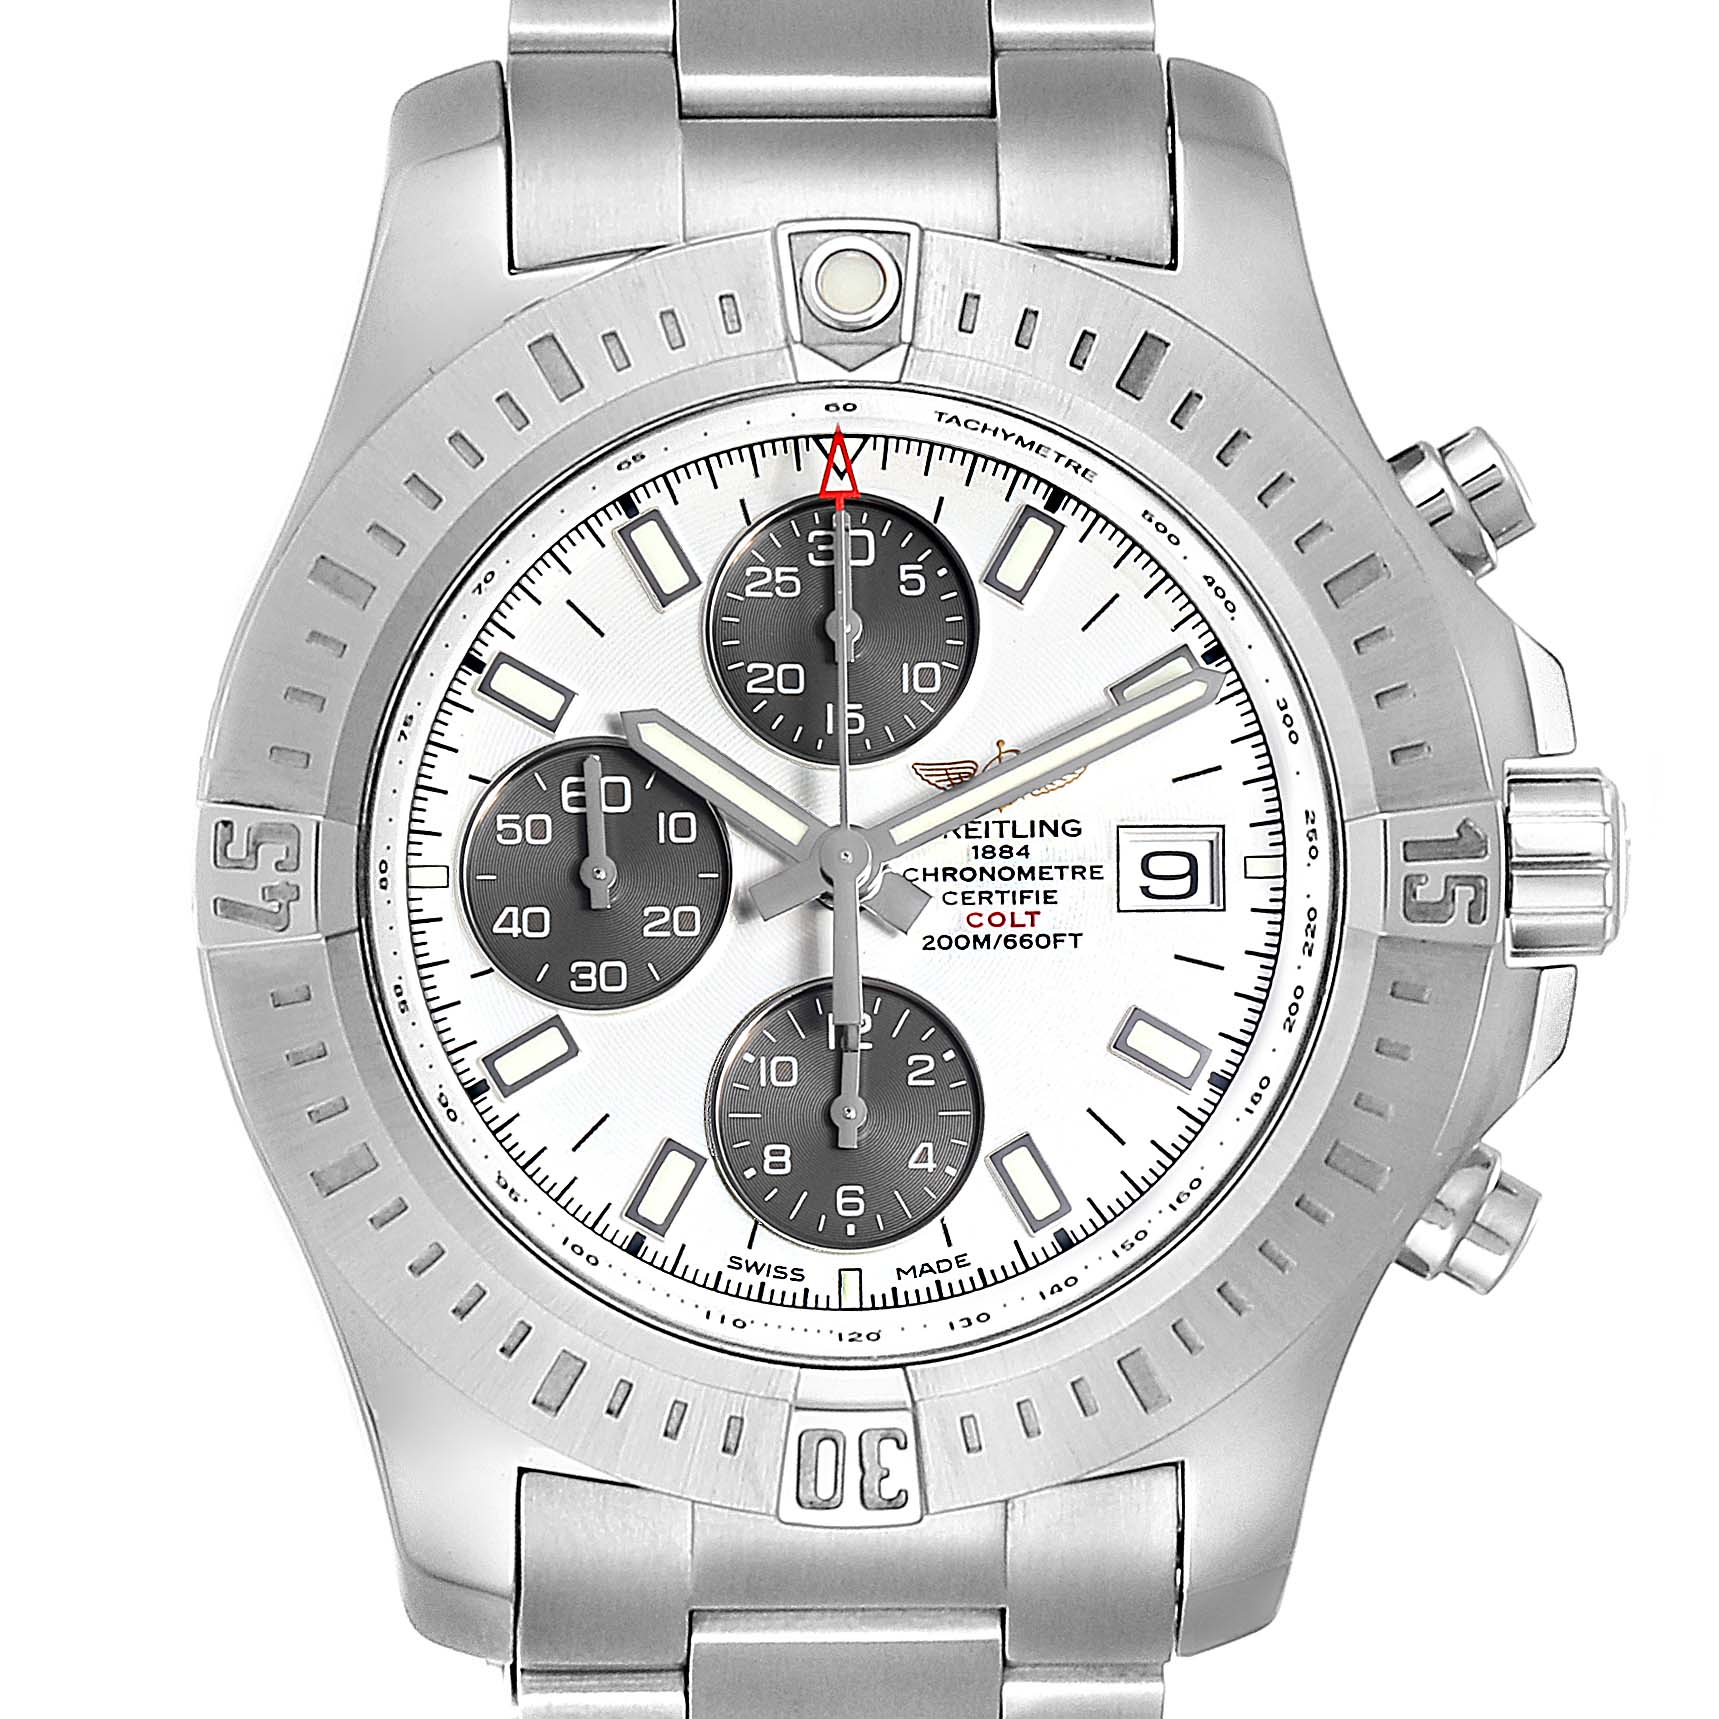 Breitling Colt Automatic Chronograph White Dial Watch A13388 Box Card